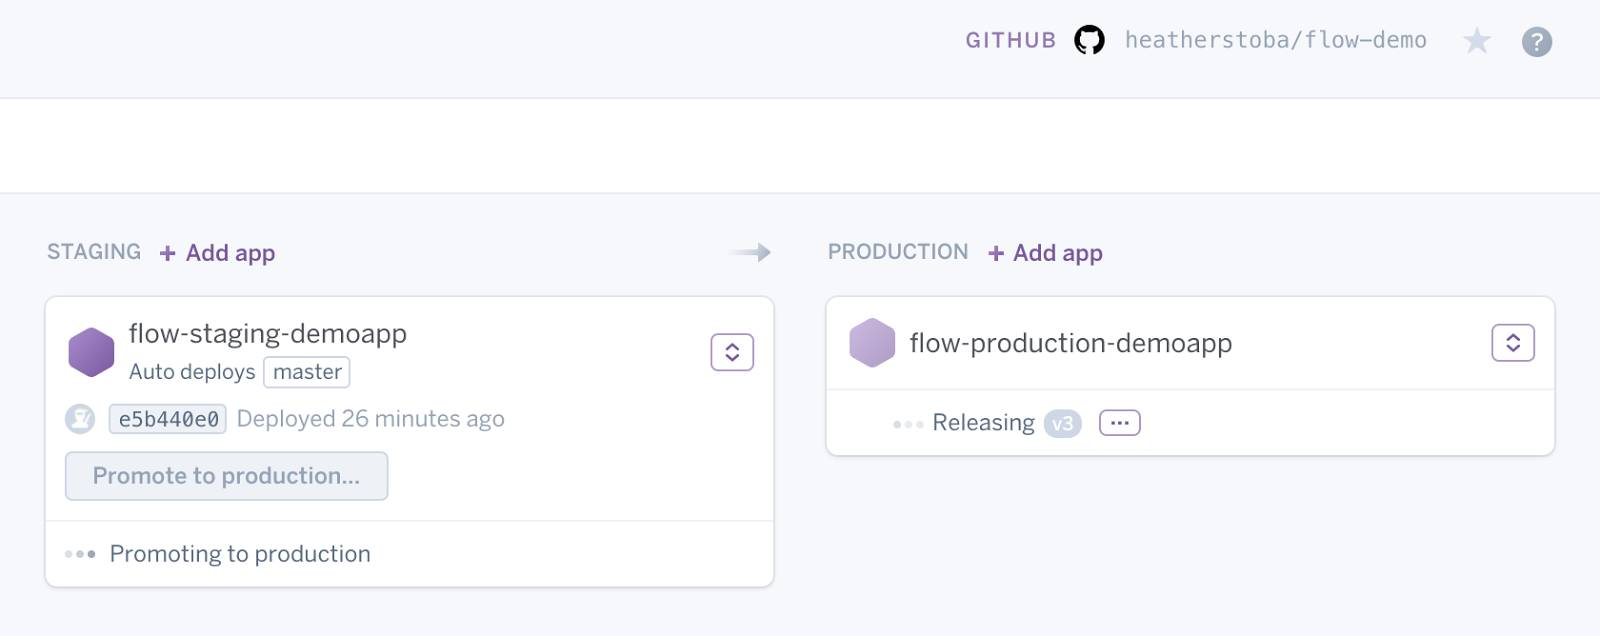 Production app is built